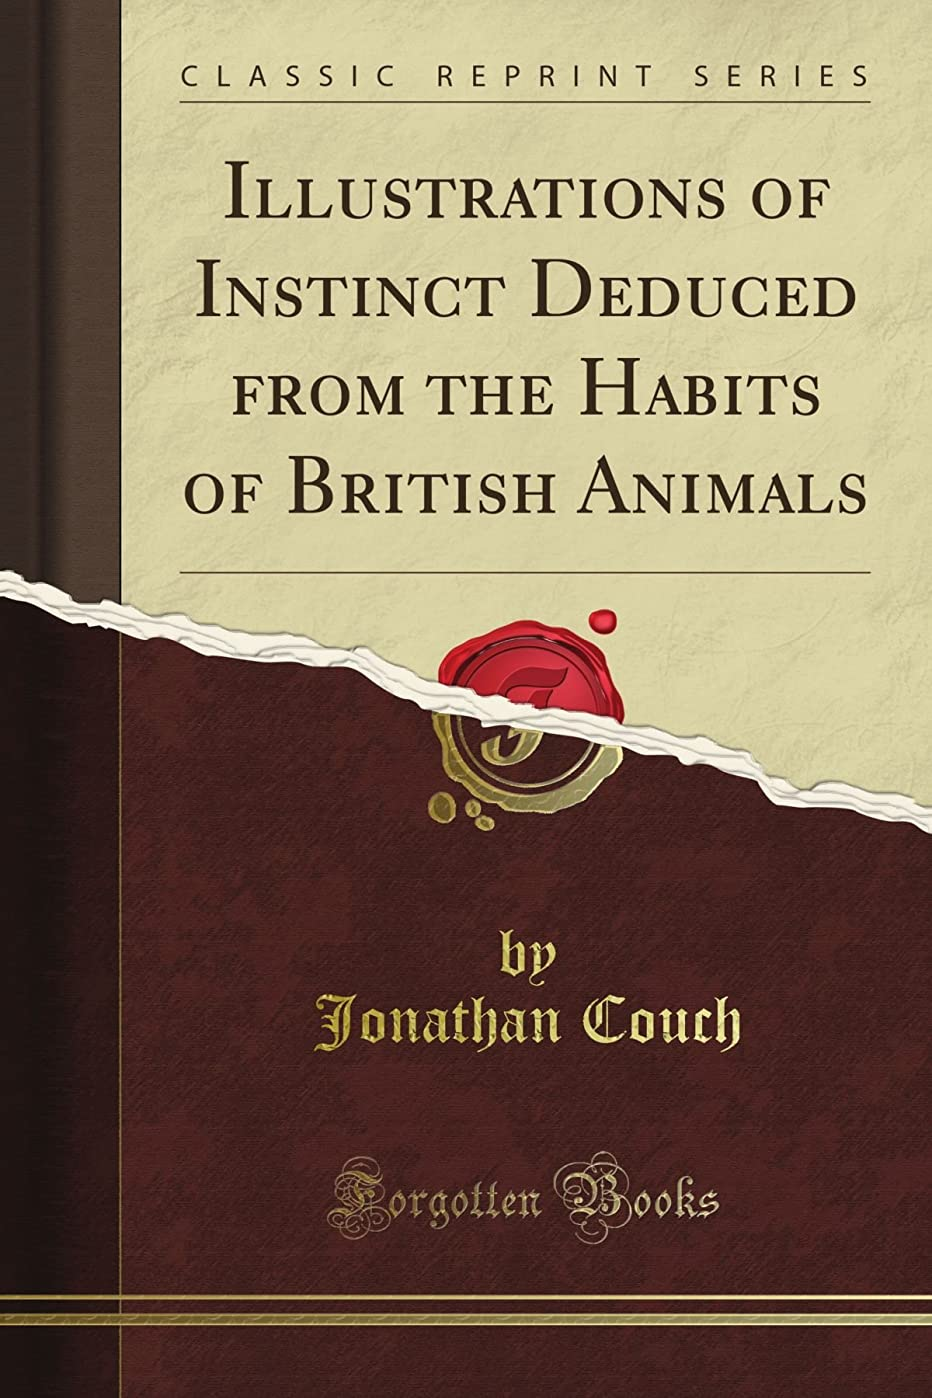 共和国怠けた司法Illustrations of Instinct Deduced from the Habits of British Animals (Classic Reprint)